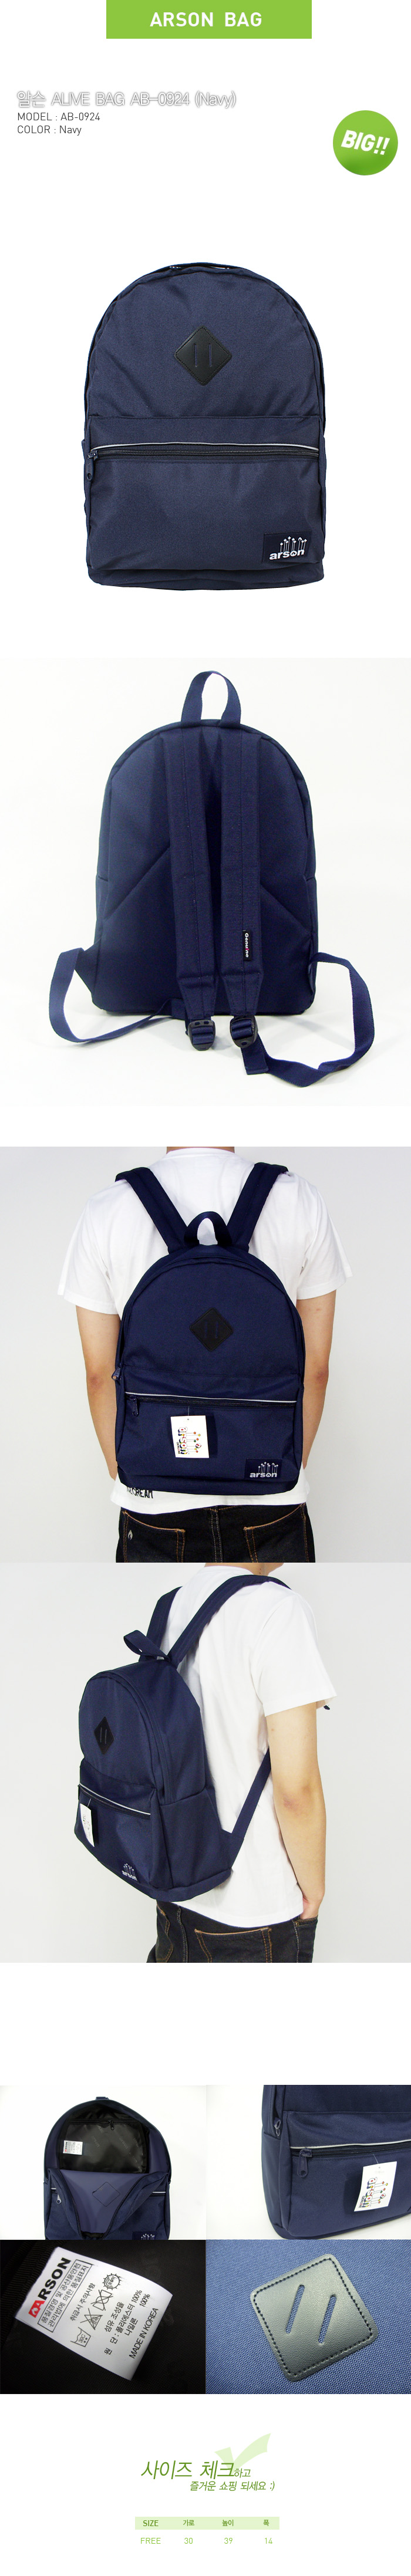 [ ARSON ] AB-0924 (Navy)/Backpack School Bag